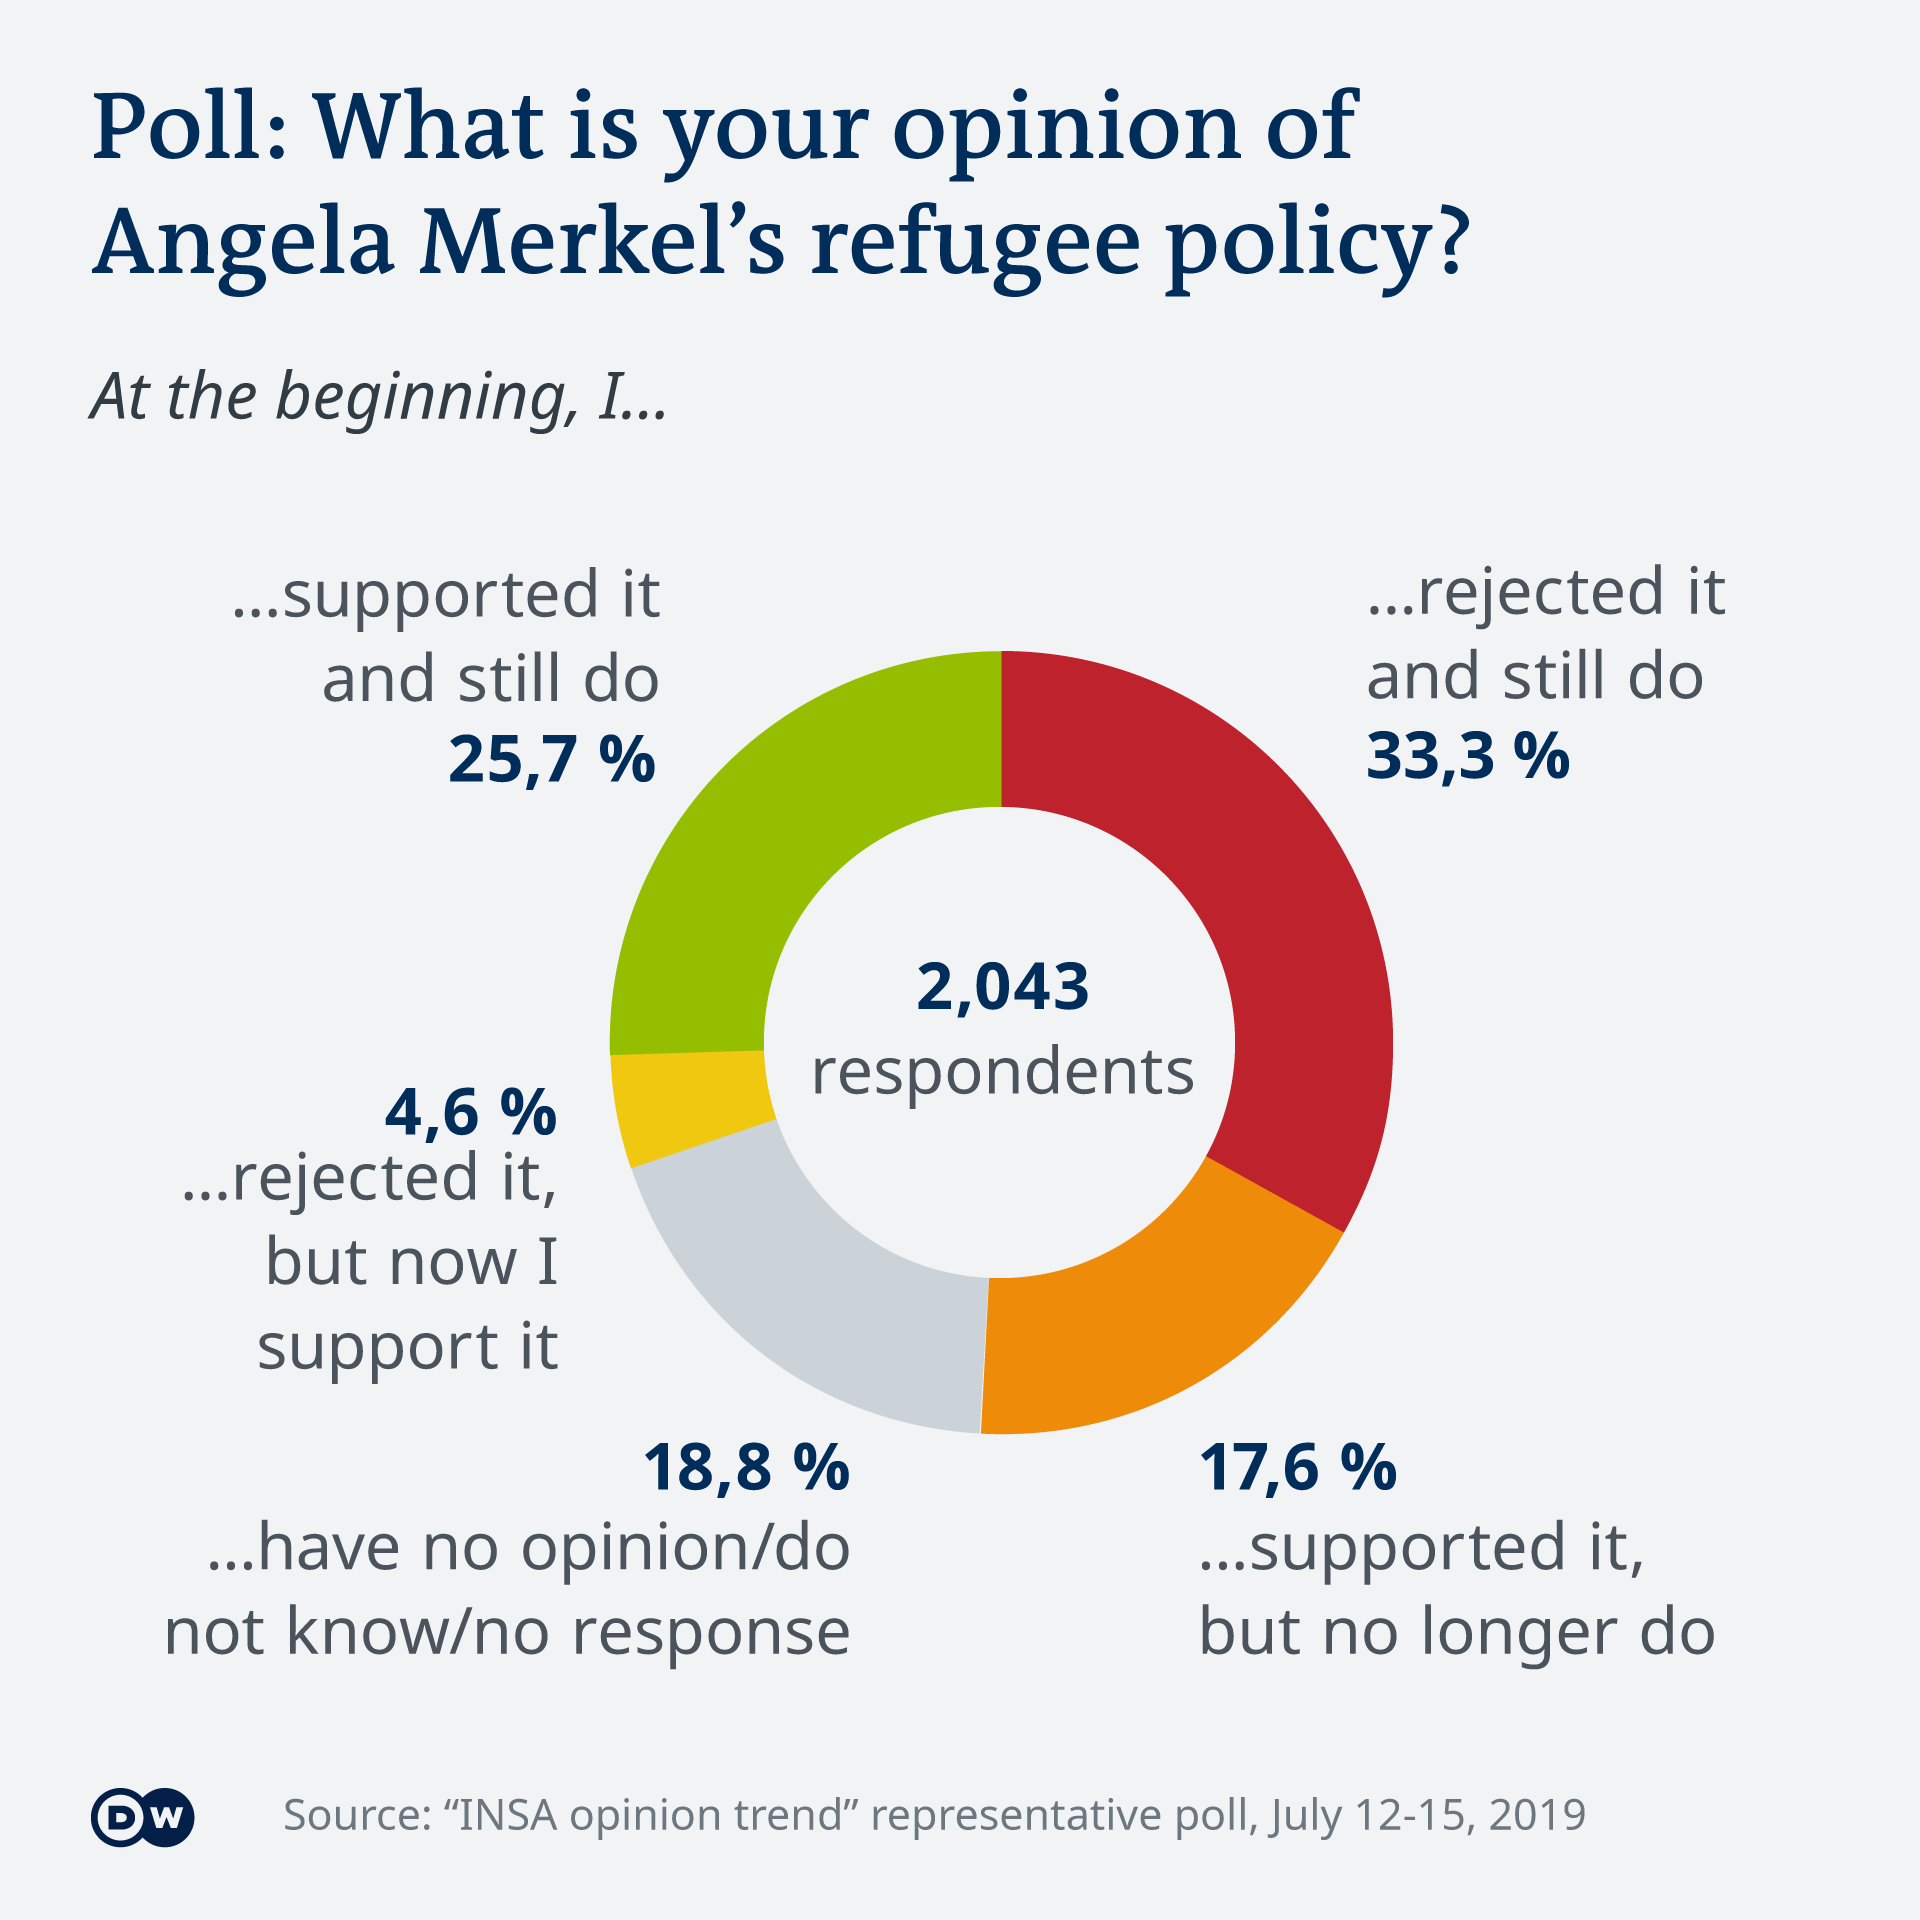 Pie chart showing results of 2019 poll on support for Angela Merkel's refugee policies